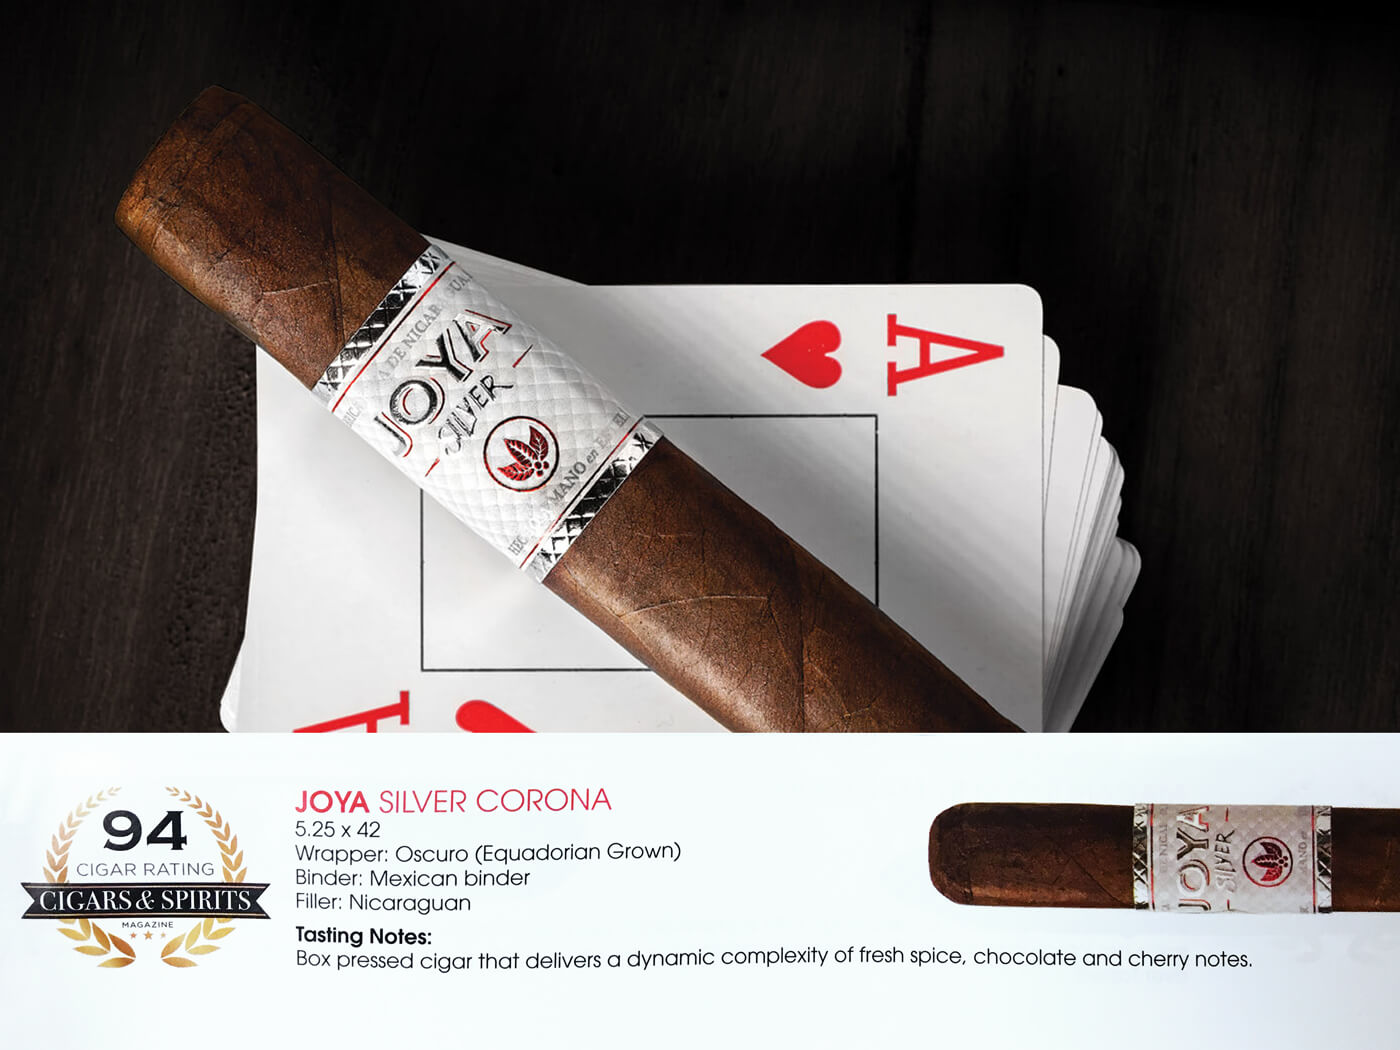 joya-silver-reviews-cigar-spirits